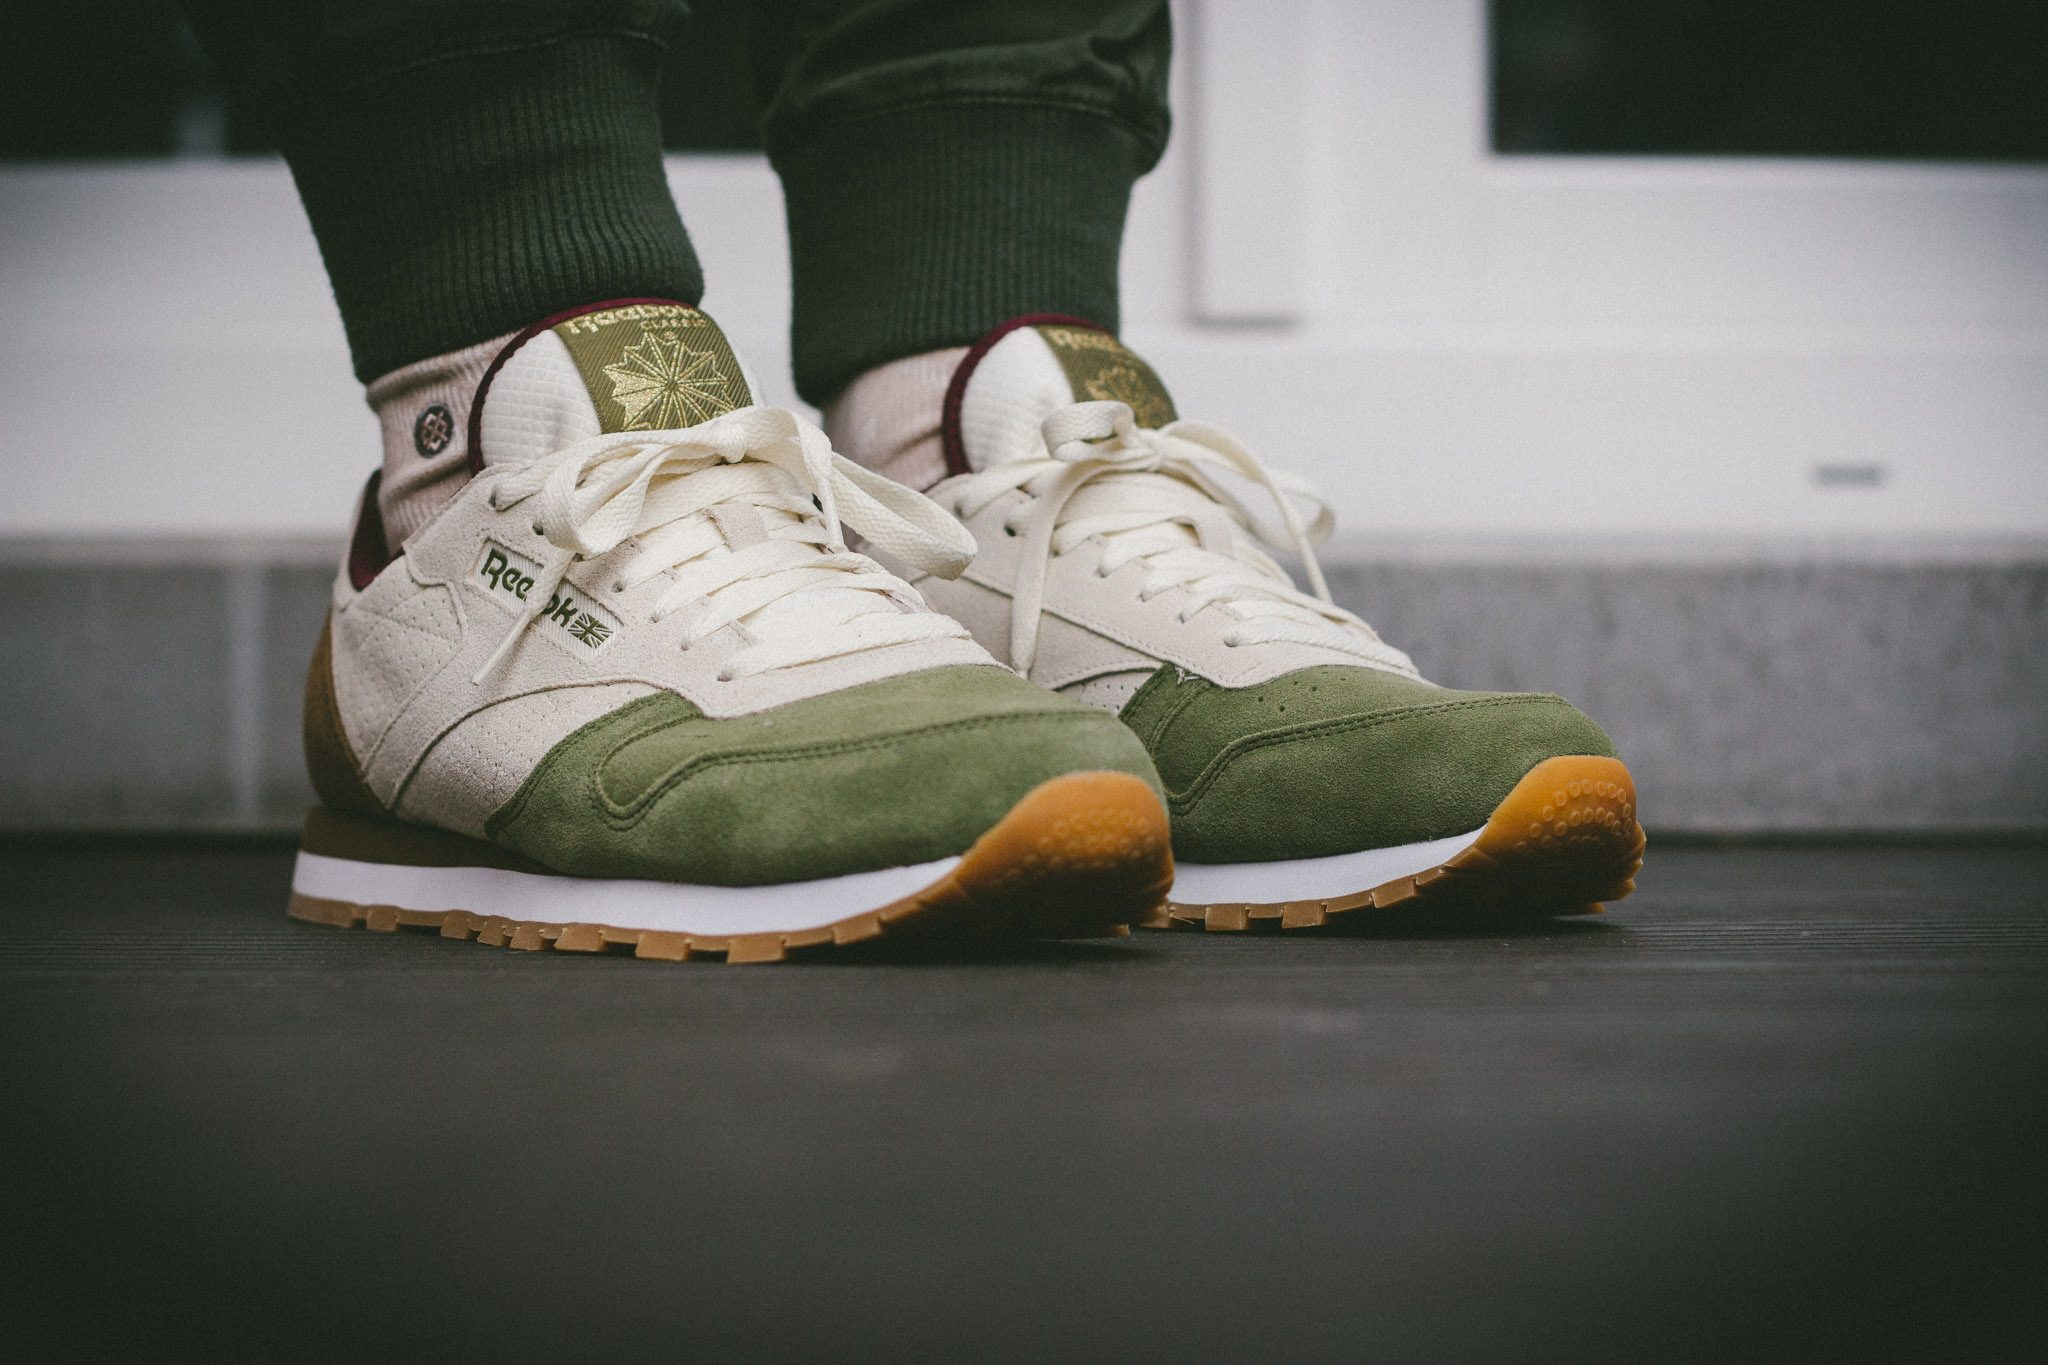 Reebok Classic Leather Oktoberfest Pack 3